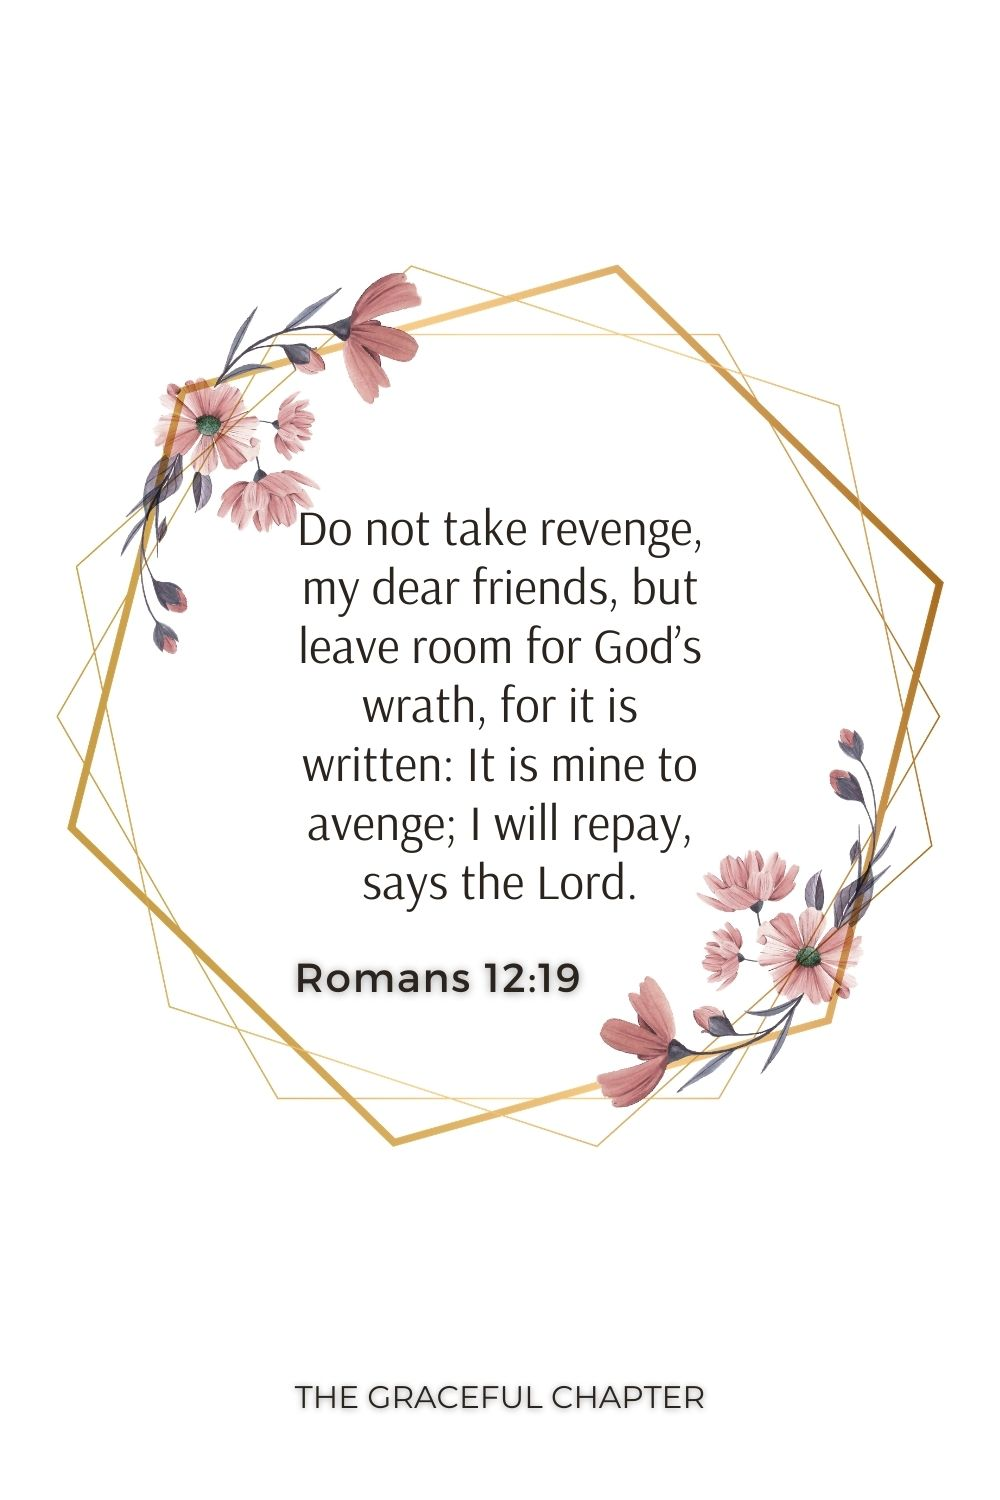 Do not take revenge, my dear friends, but leave room for God's wrath, for it is written: It is mine to avenge; I will repay, says the Lord. Romans 12:19